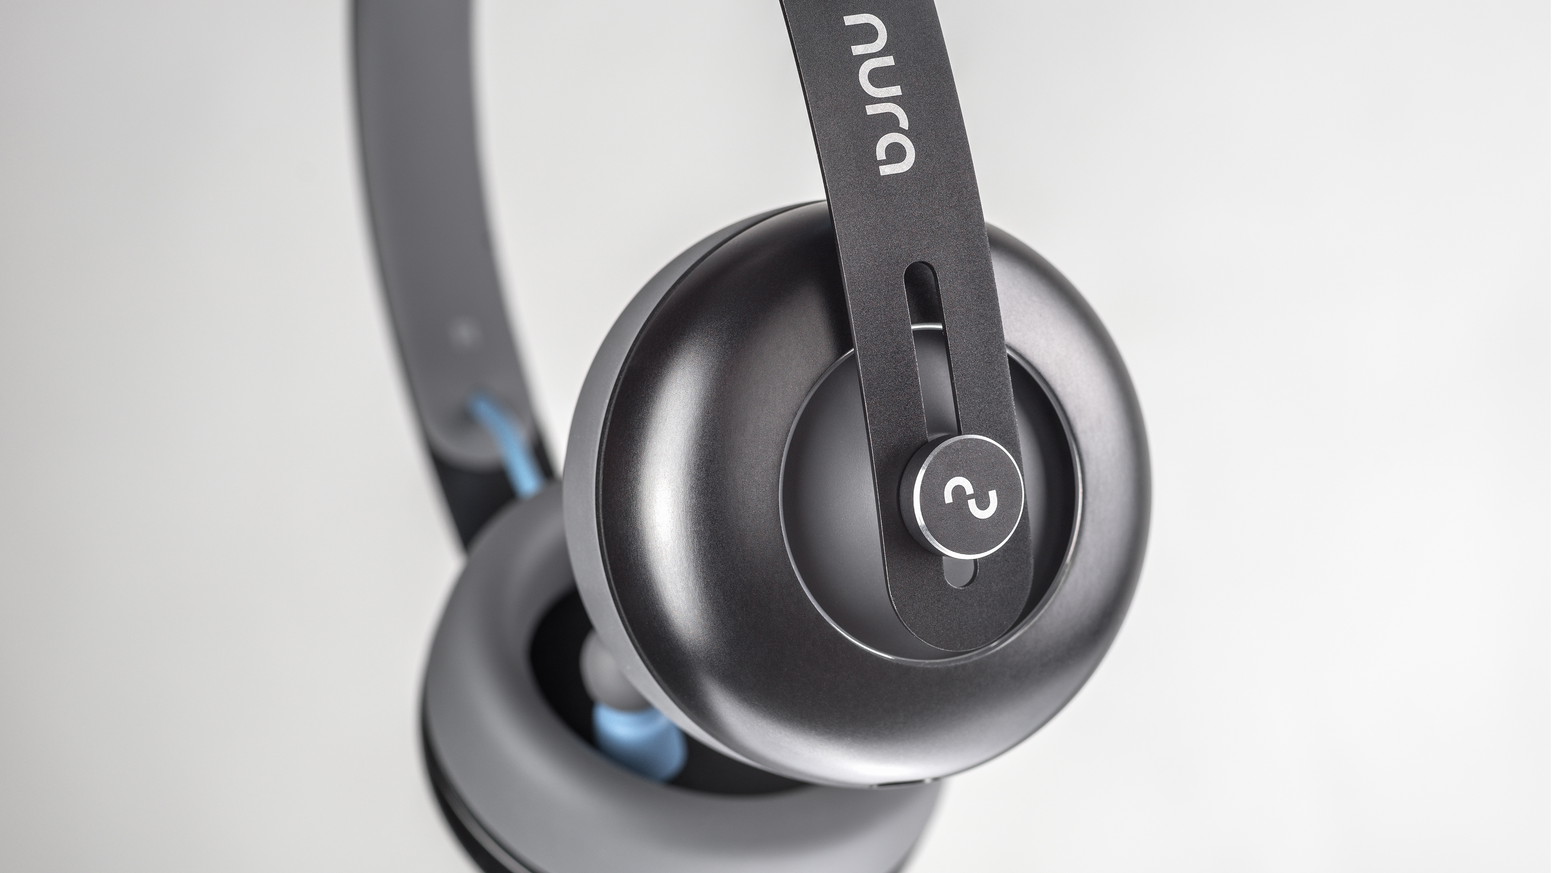 nuraphones have an in and over ear design and  automatically tune to your unique hearing in 30sec.     Pre-order | nuraphone.com